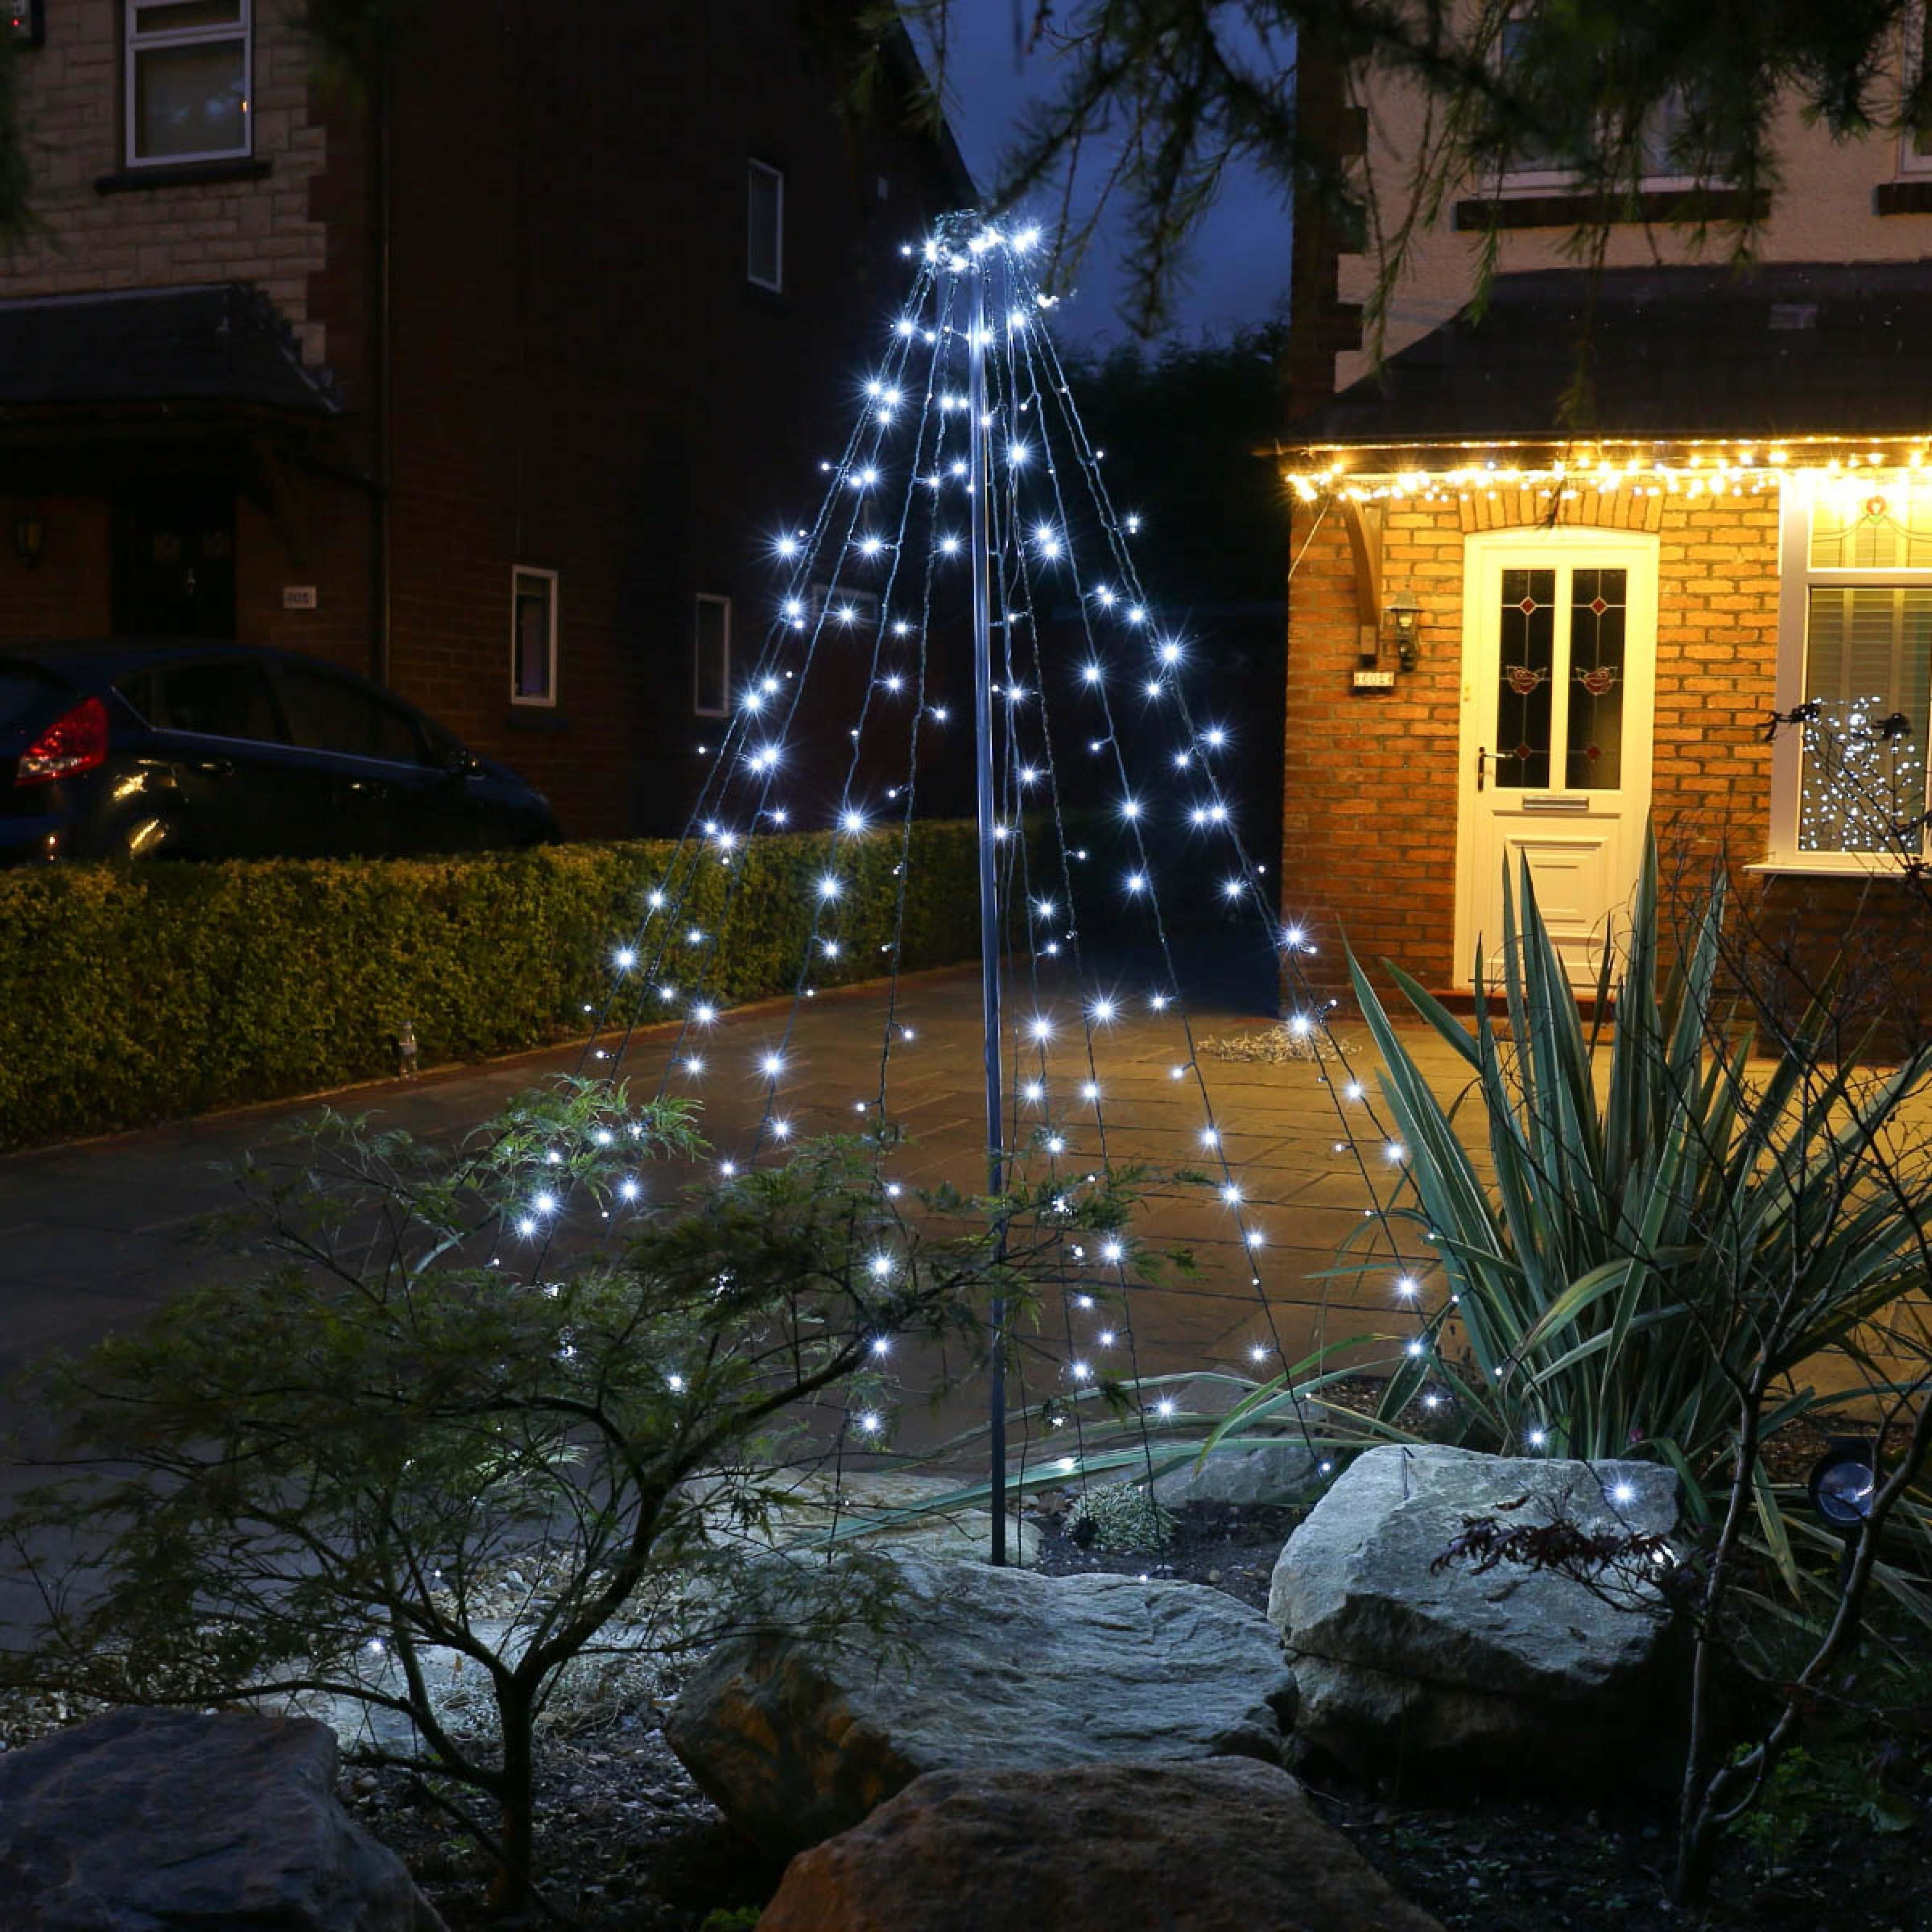 Outdoor Christmas Trees: Buy Now From Festive Lights Within Newest Outdoor Lanterns For Trees (View 13 of 20)